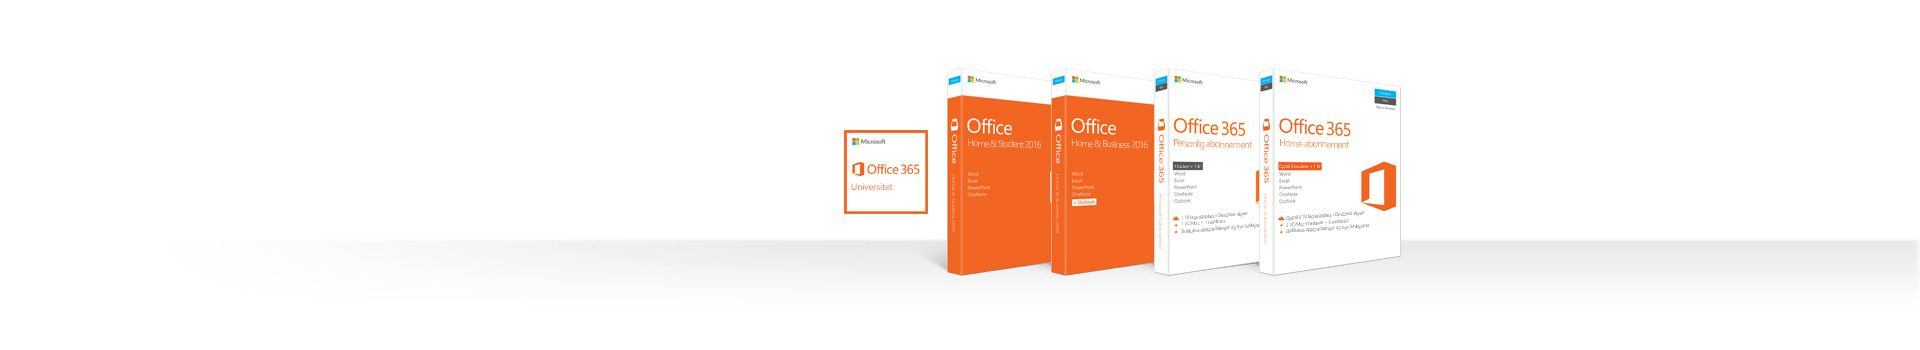 En rad med bokser for Office 2016- og Office 365-produkter for Mac